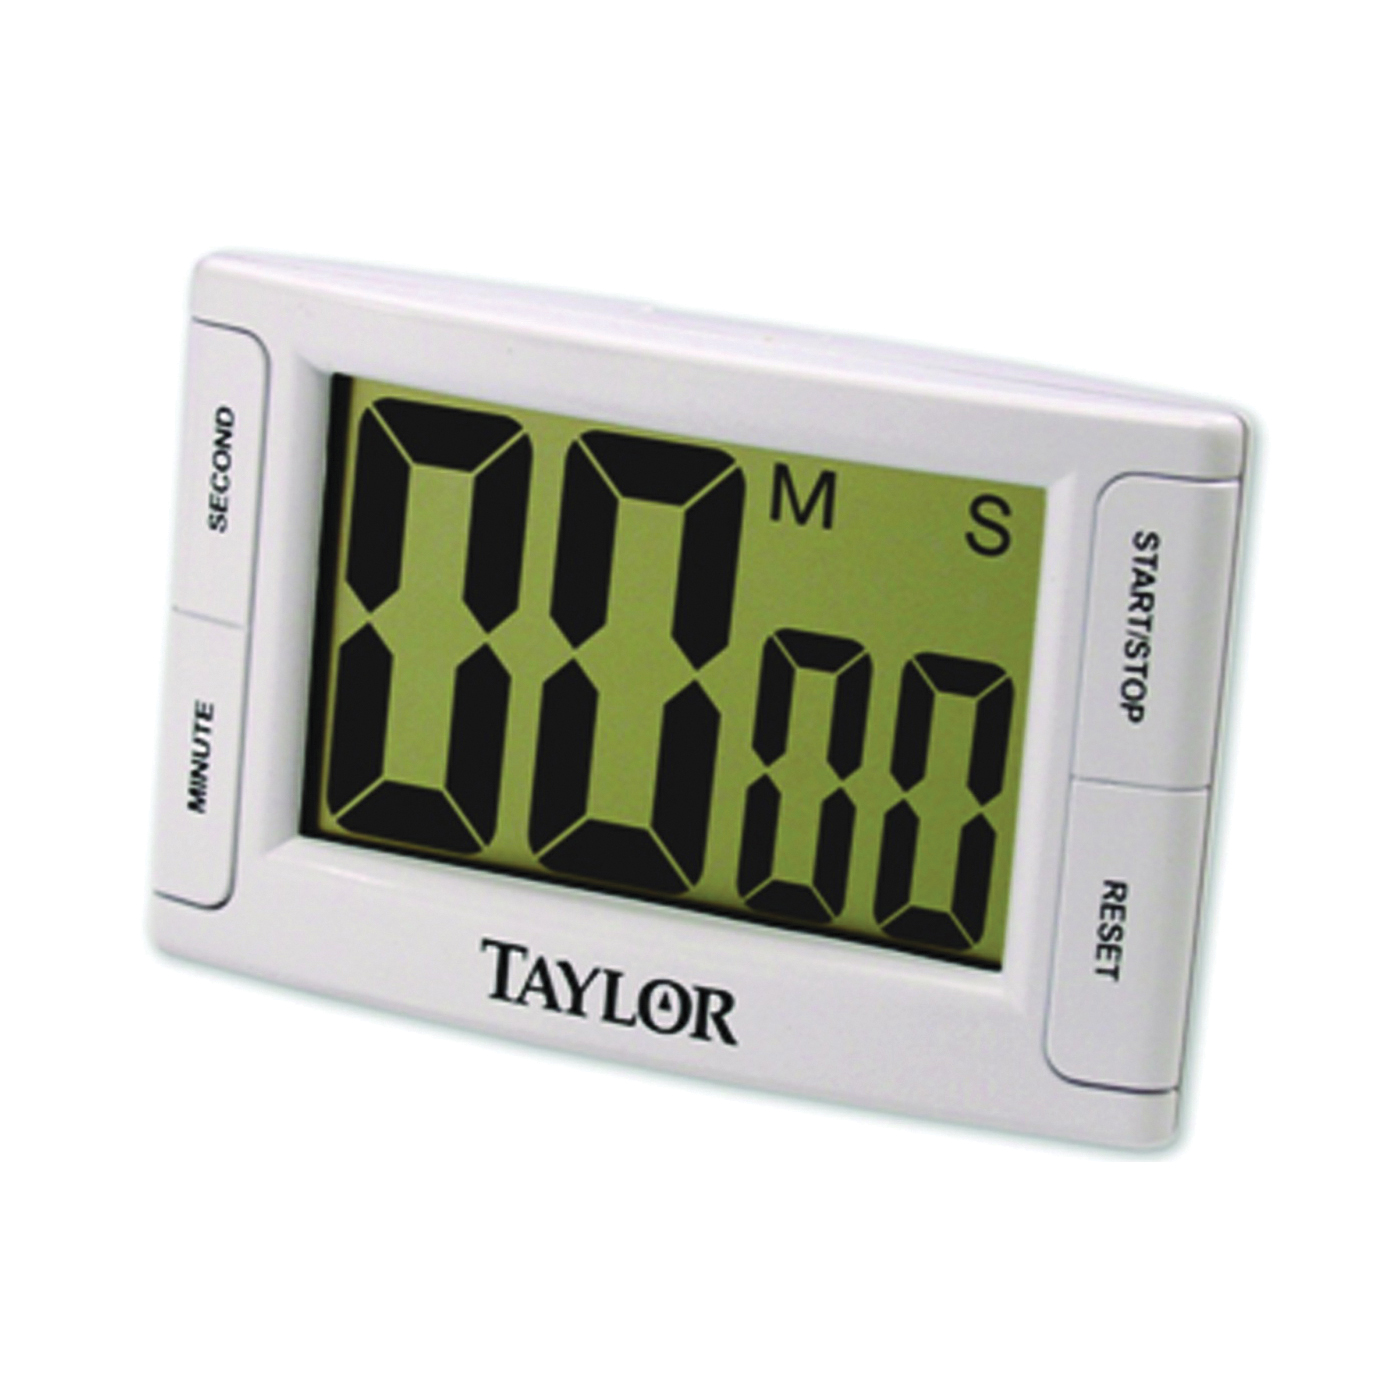 Picture of Taylor 5896 Timer, LCD Display, 0 min 0 sec to 99 min 59 sec